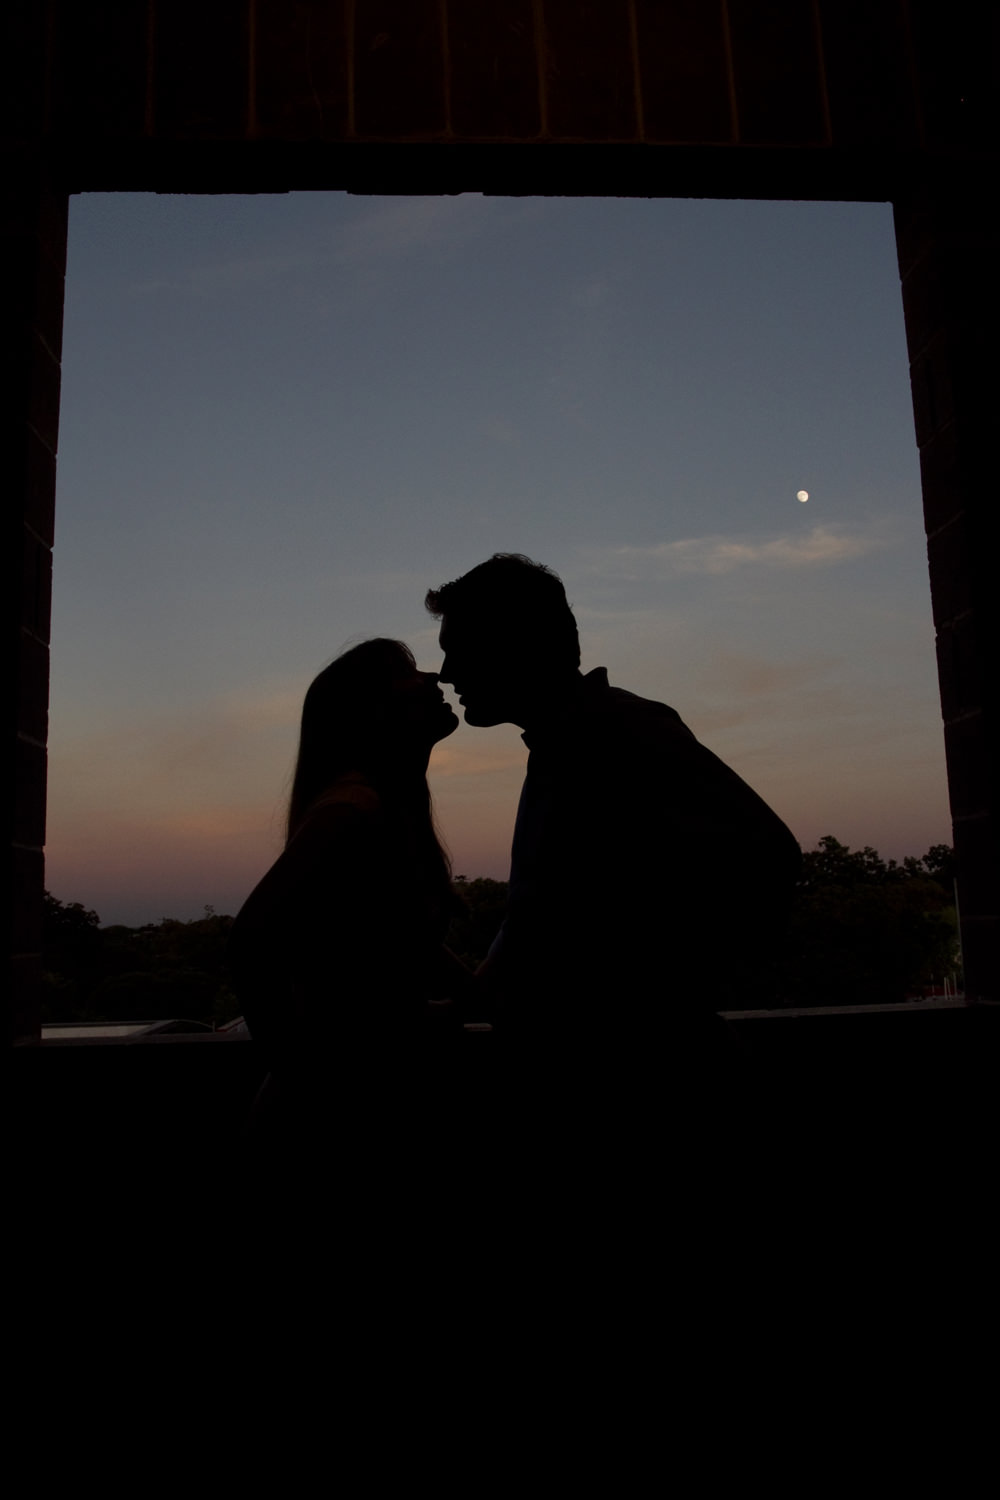 Kissing Silhouette Photography